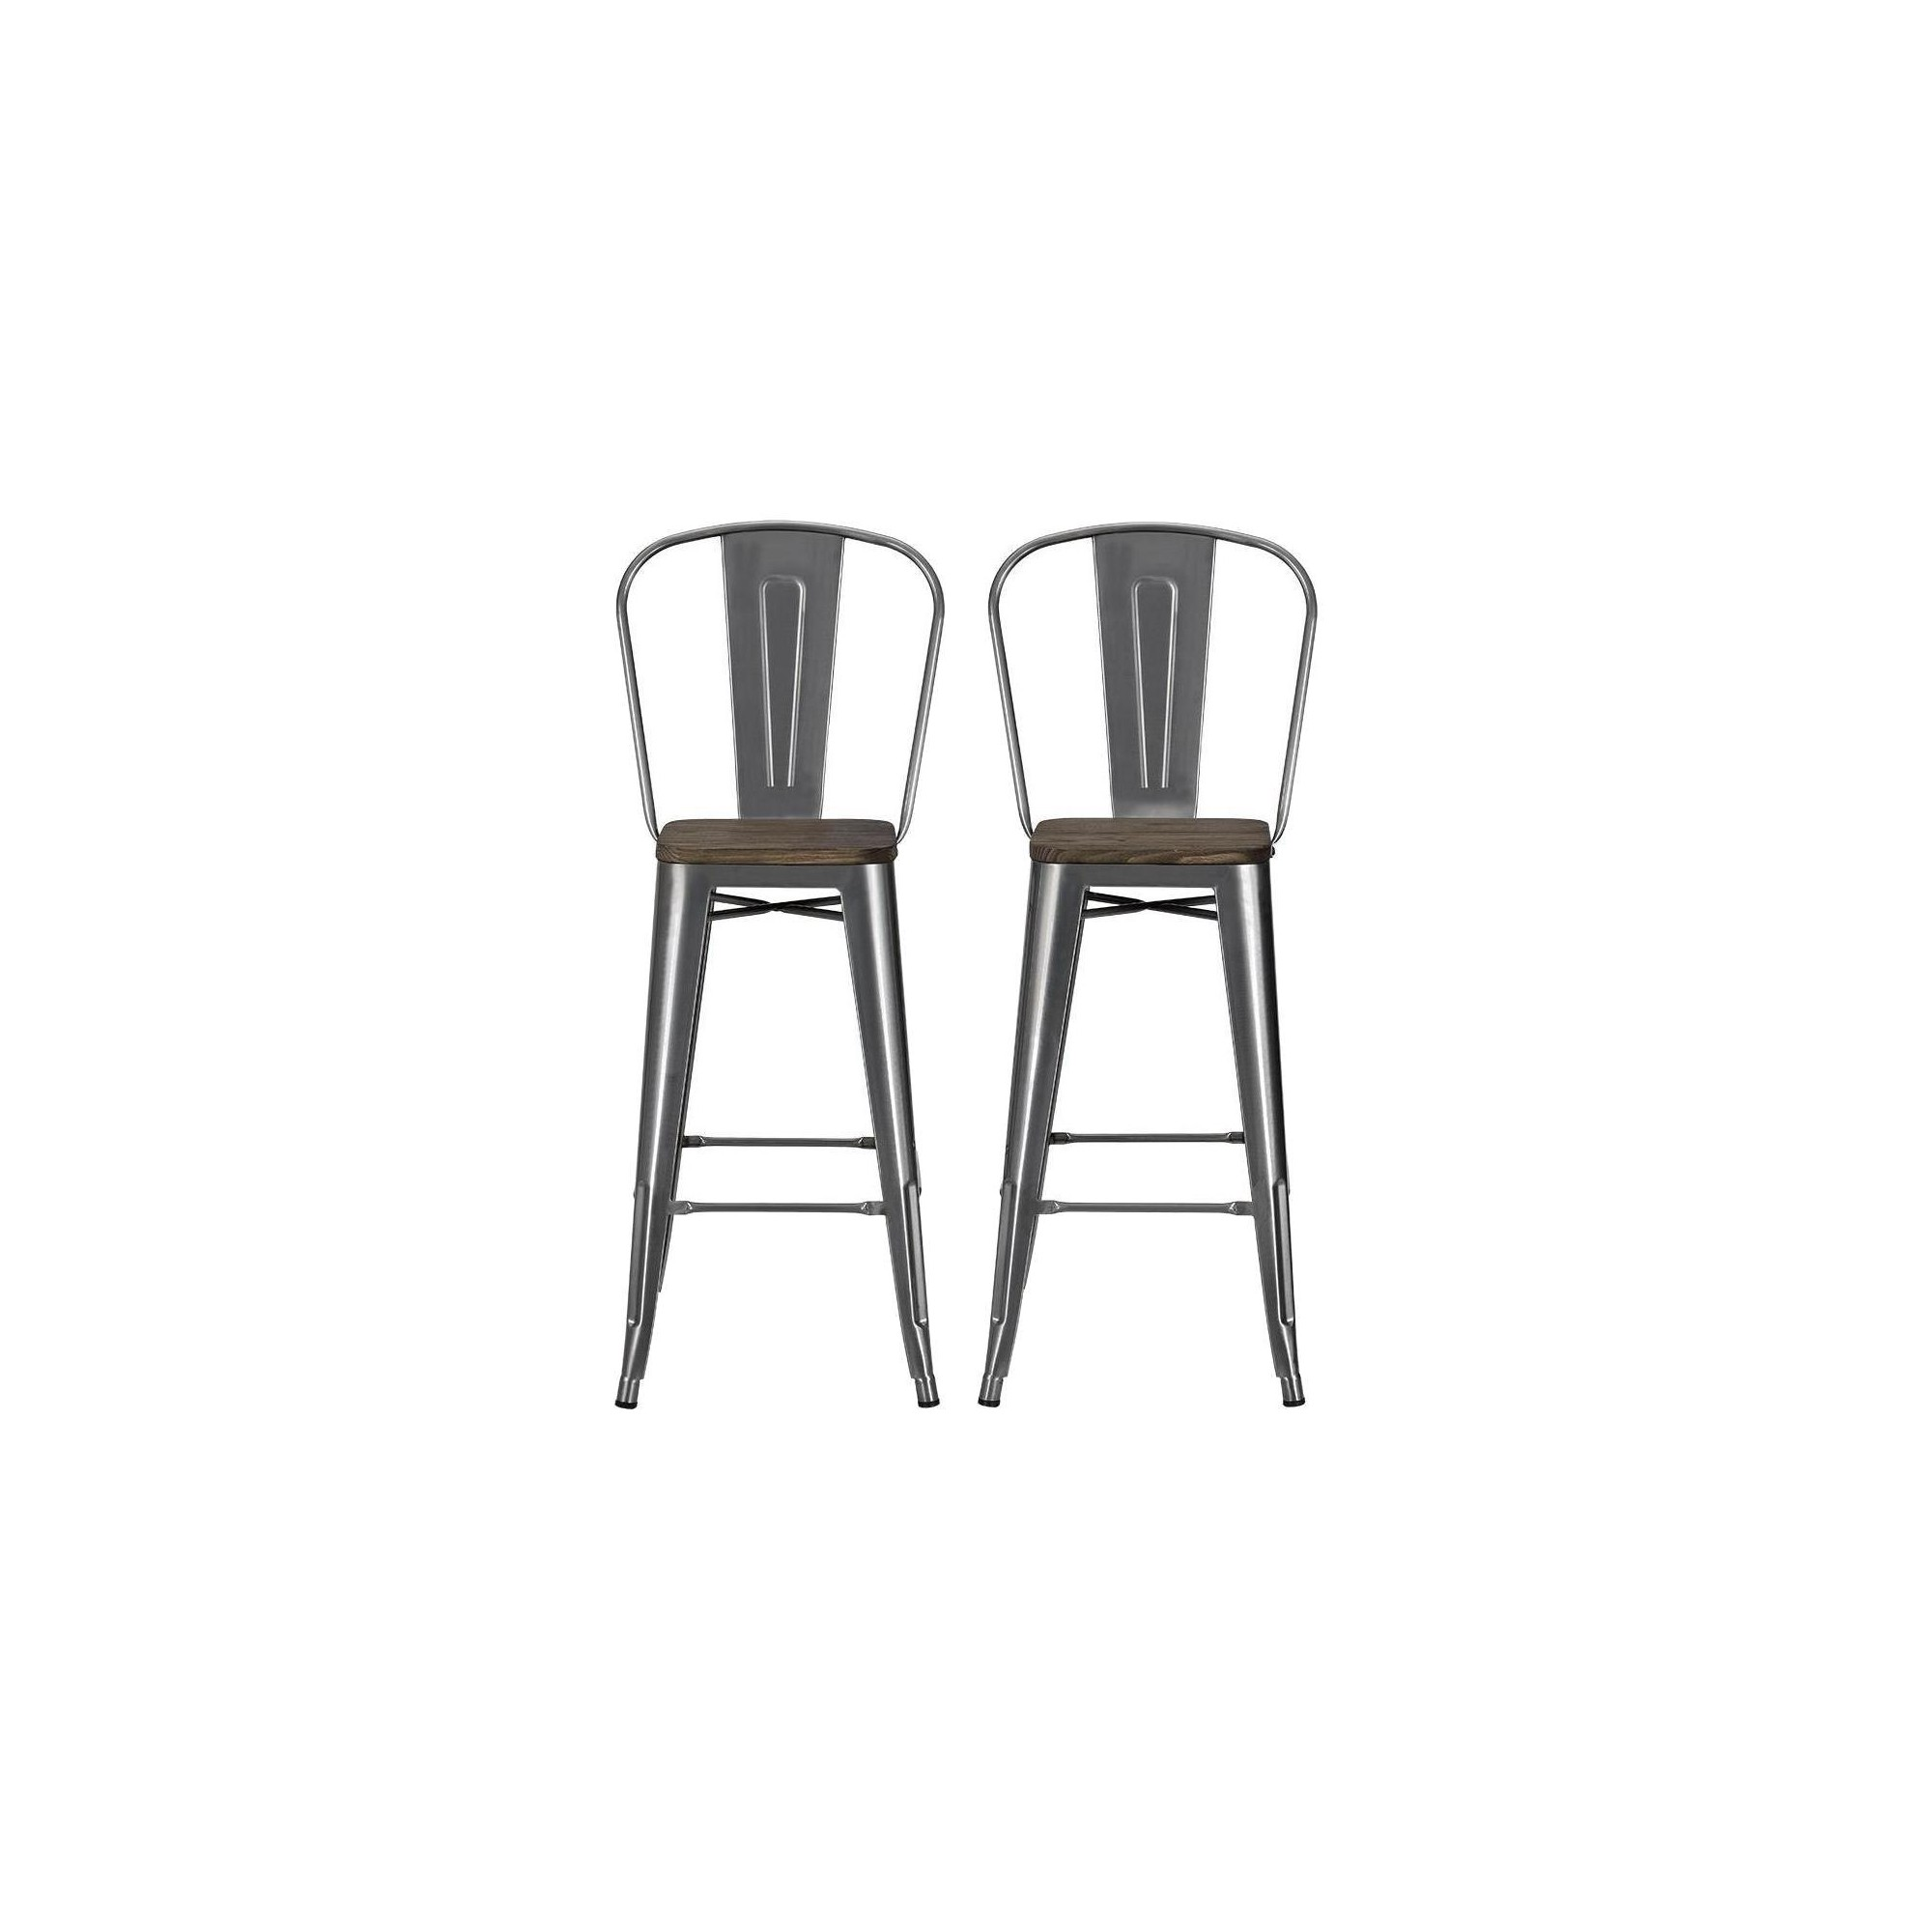 Fabulous 30 Luxor Metal Bar Stool With Wood Seat 2Pc Gunmetal Grey Ocoug Best Dining Table And Chair Ideas Images Ocougorg